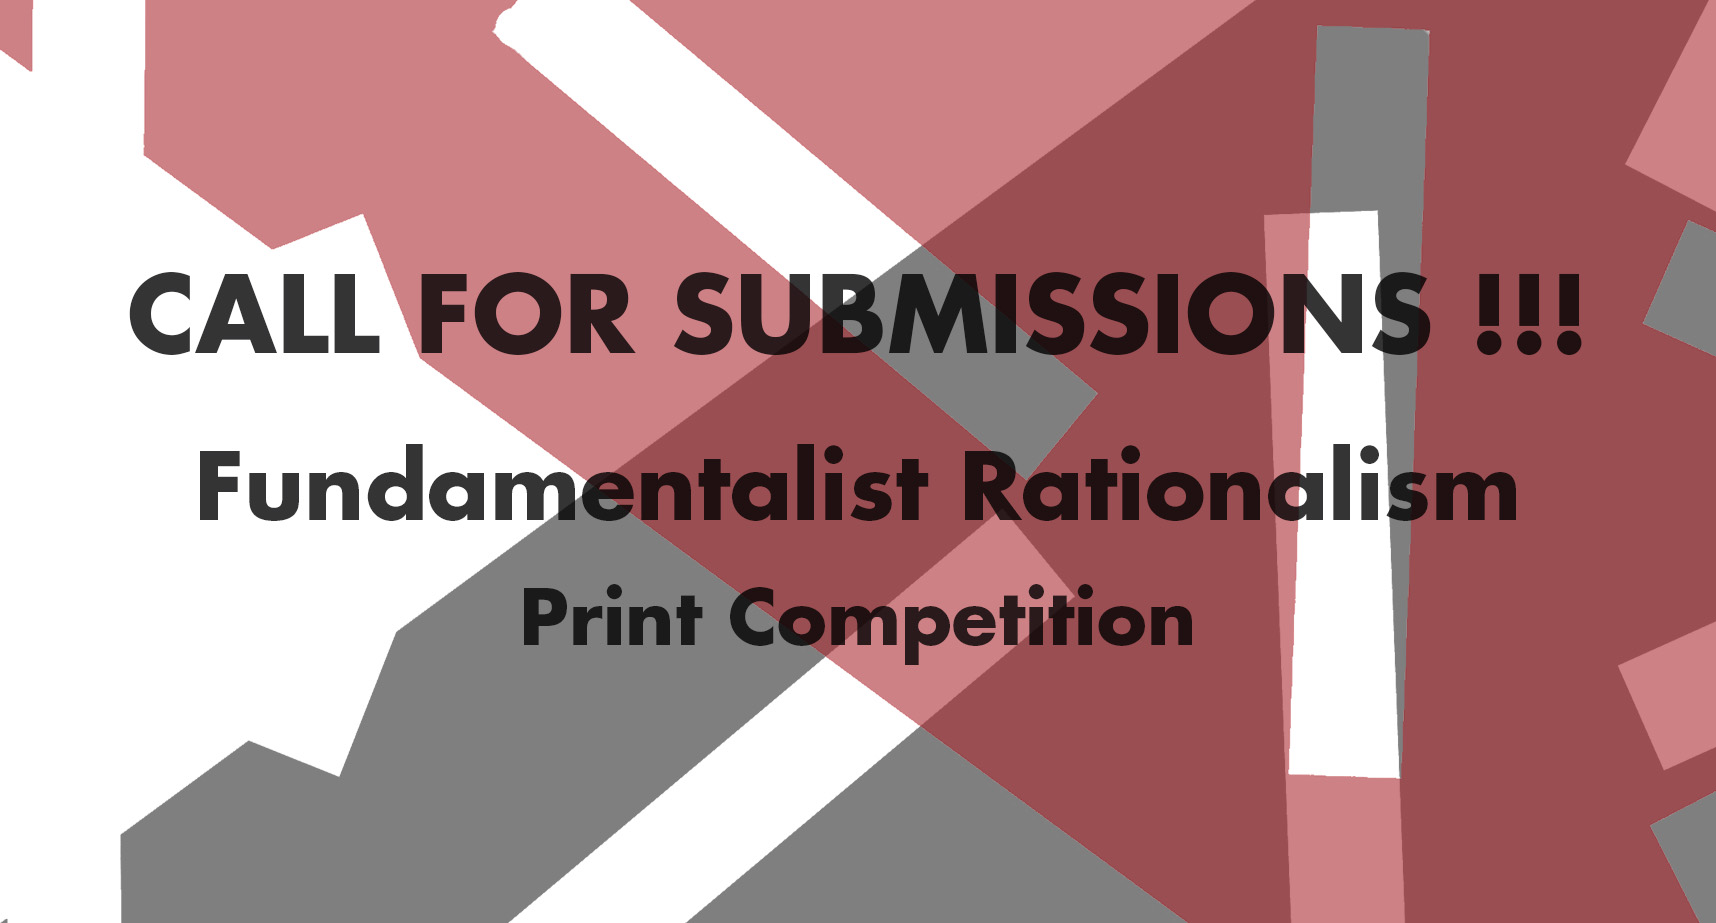 Fundamentalist Rationalism - Print Competition